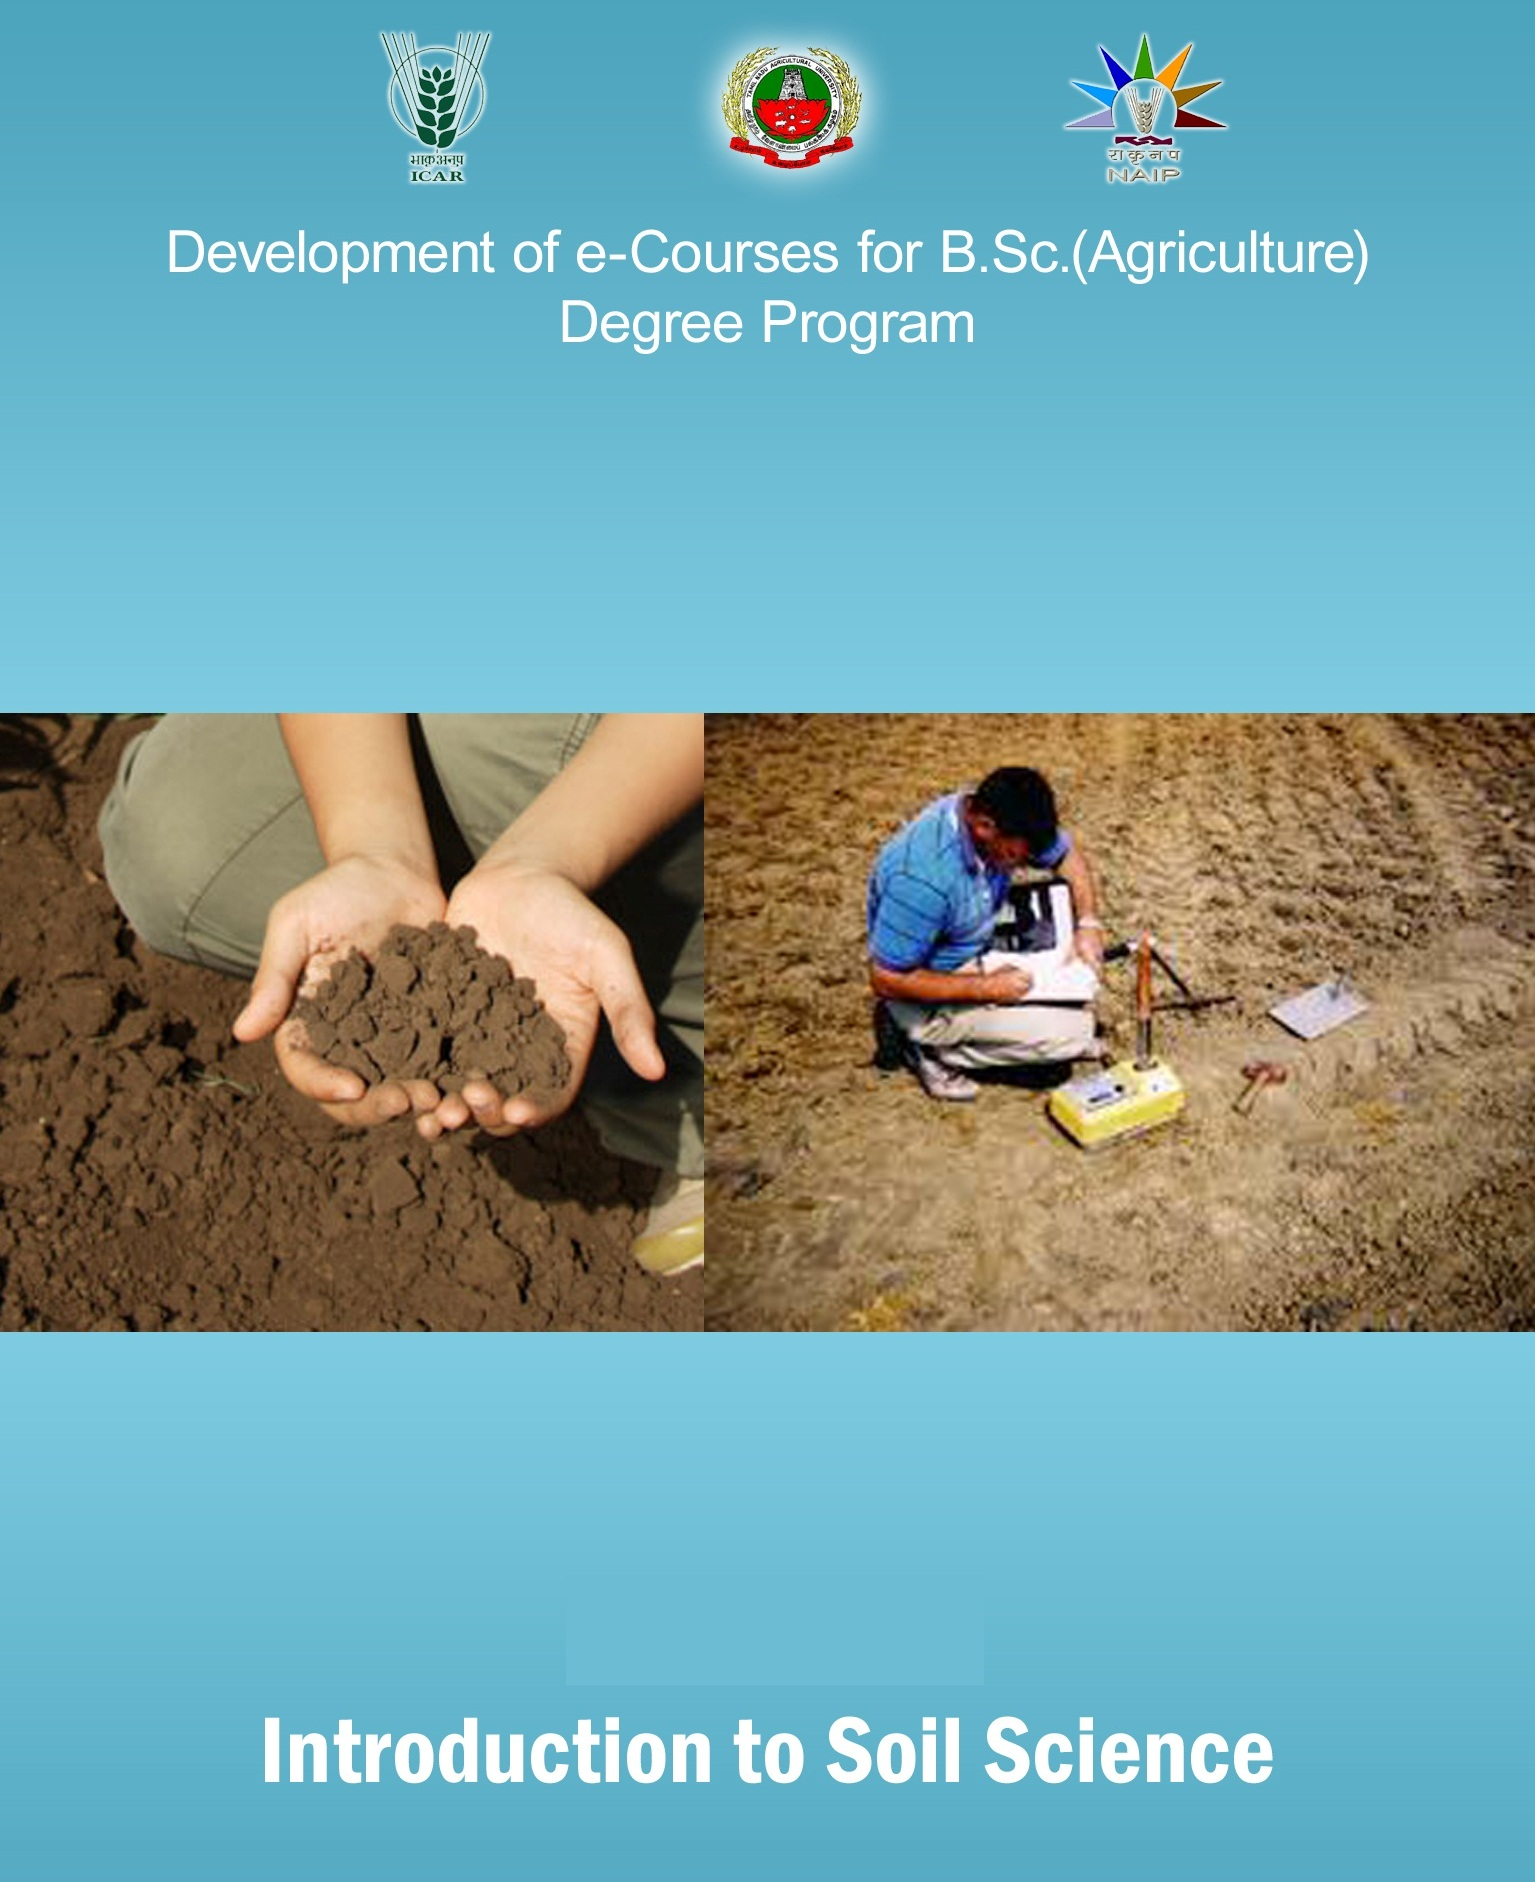 Introduction to soil science icar ecourse pdf books for Introduction of soil